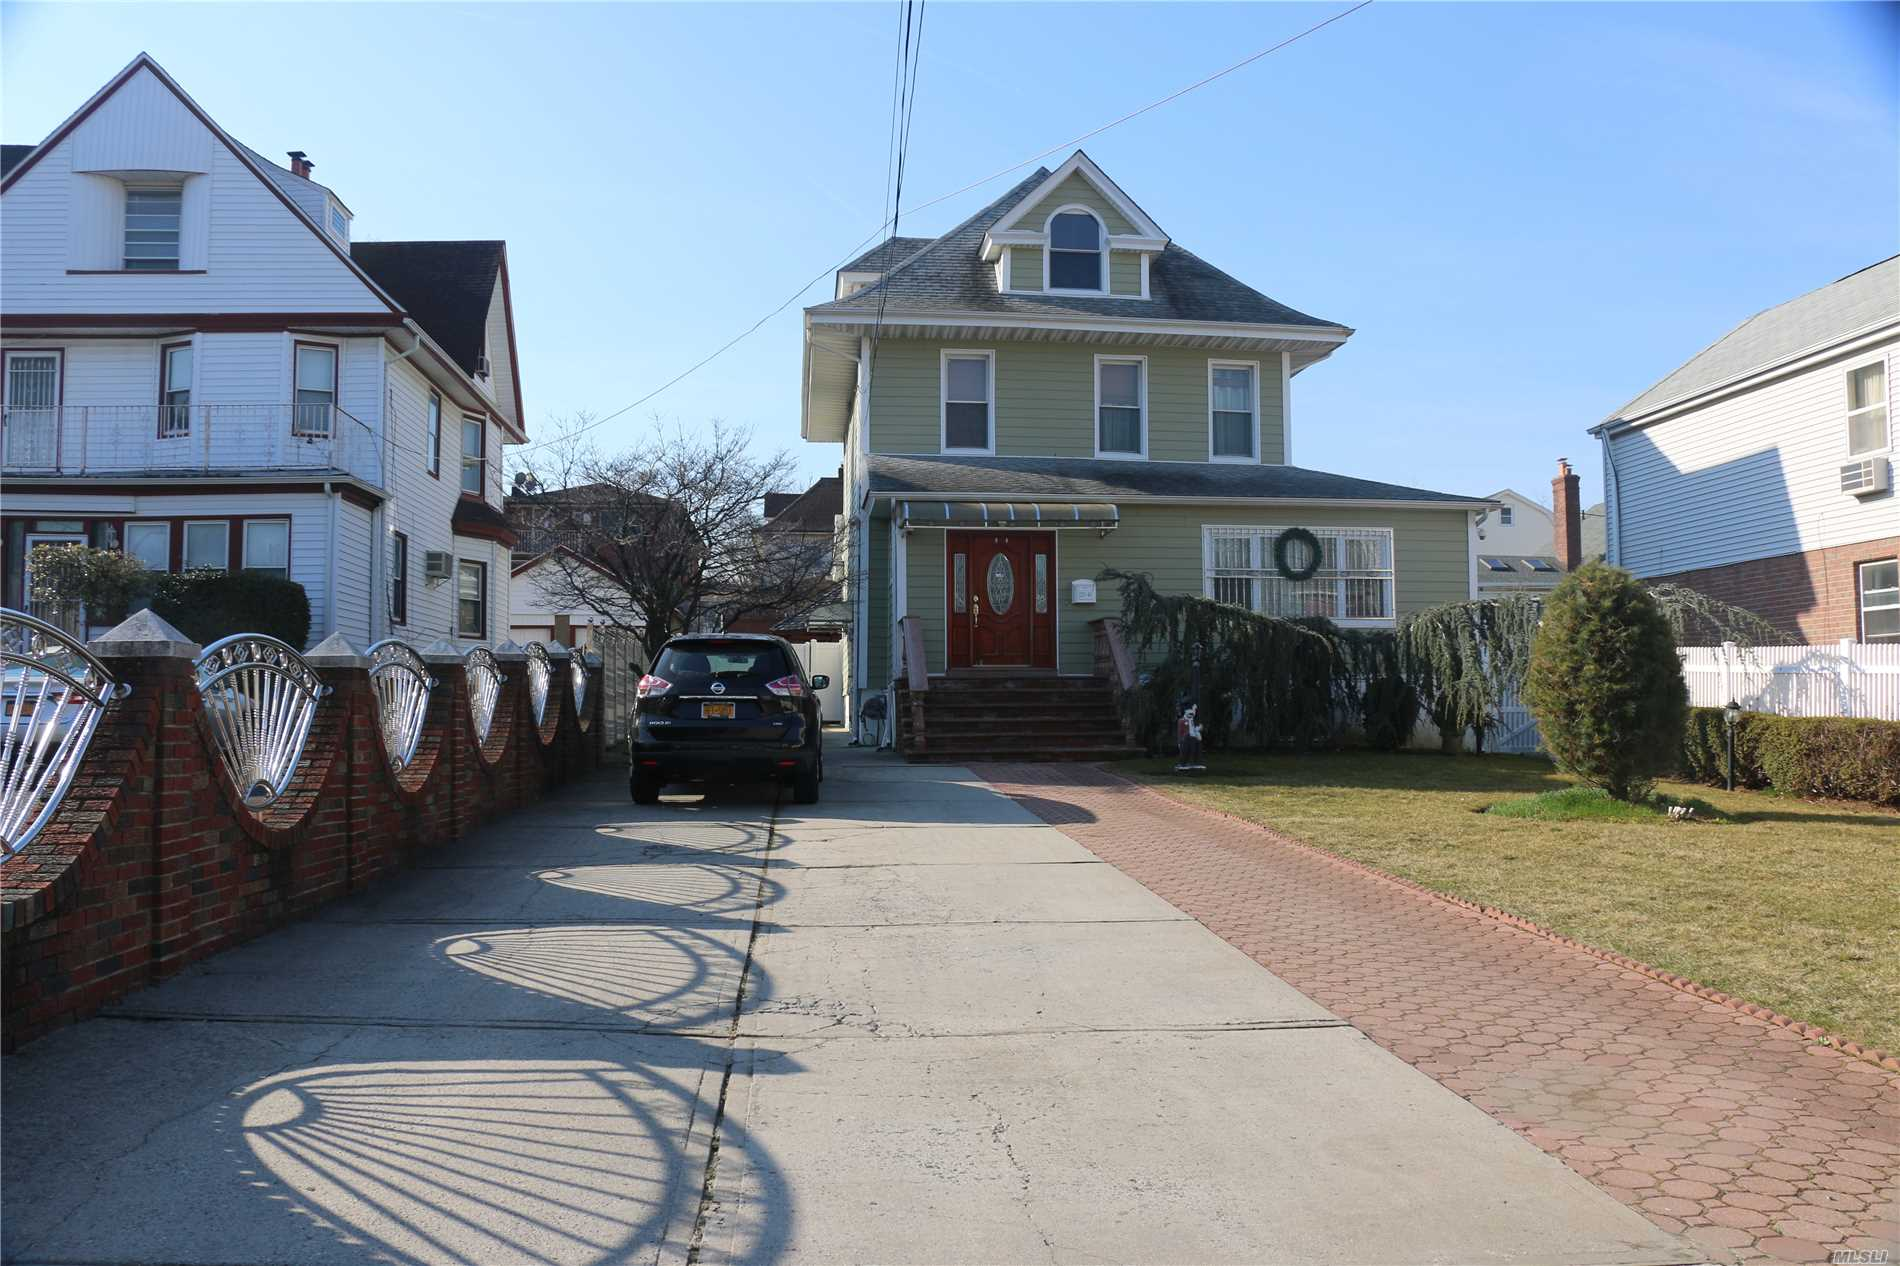 R4-1 with lot size 8750 sq ft in the prime area of College Point, walk to park, bus,  now 2 family used as 1 family with updated kitchen and baths, total 6 beds, 3 full baths, 2 half baths, good for big family 2 tankless furnaces(1fl+basement, 2fl+attic) extra deep property 50x175=8750 square footage, with R4-1 f or rebuild huge multi family , next to Hermon MacNeil Park,  walk to Q25(to Main St., Flushing), huge backyard with gazebo, place for relaxing and privacy